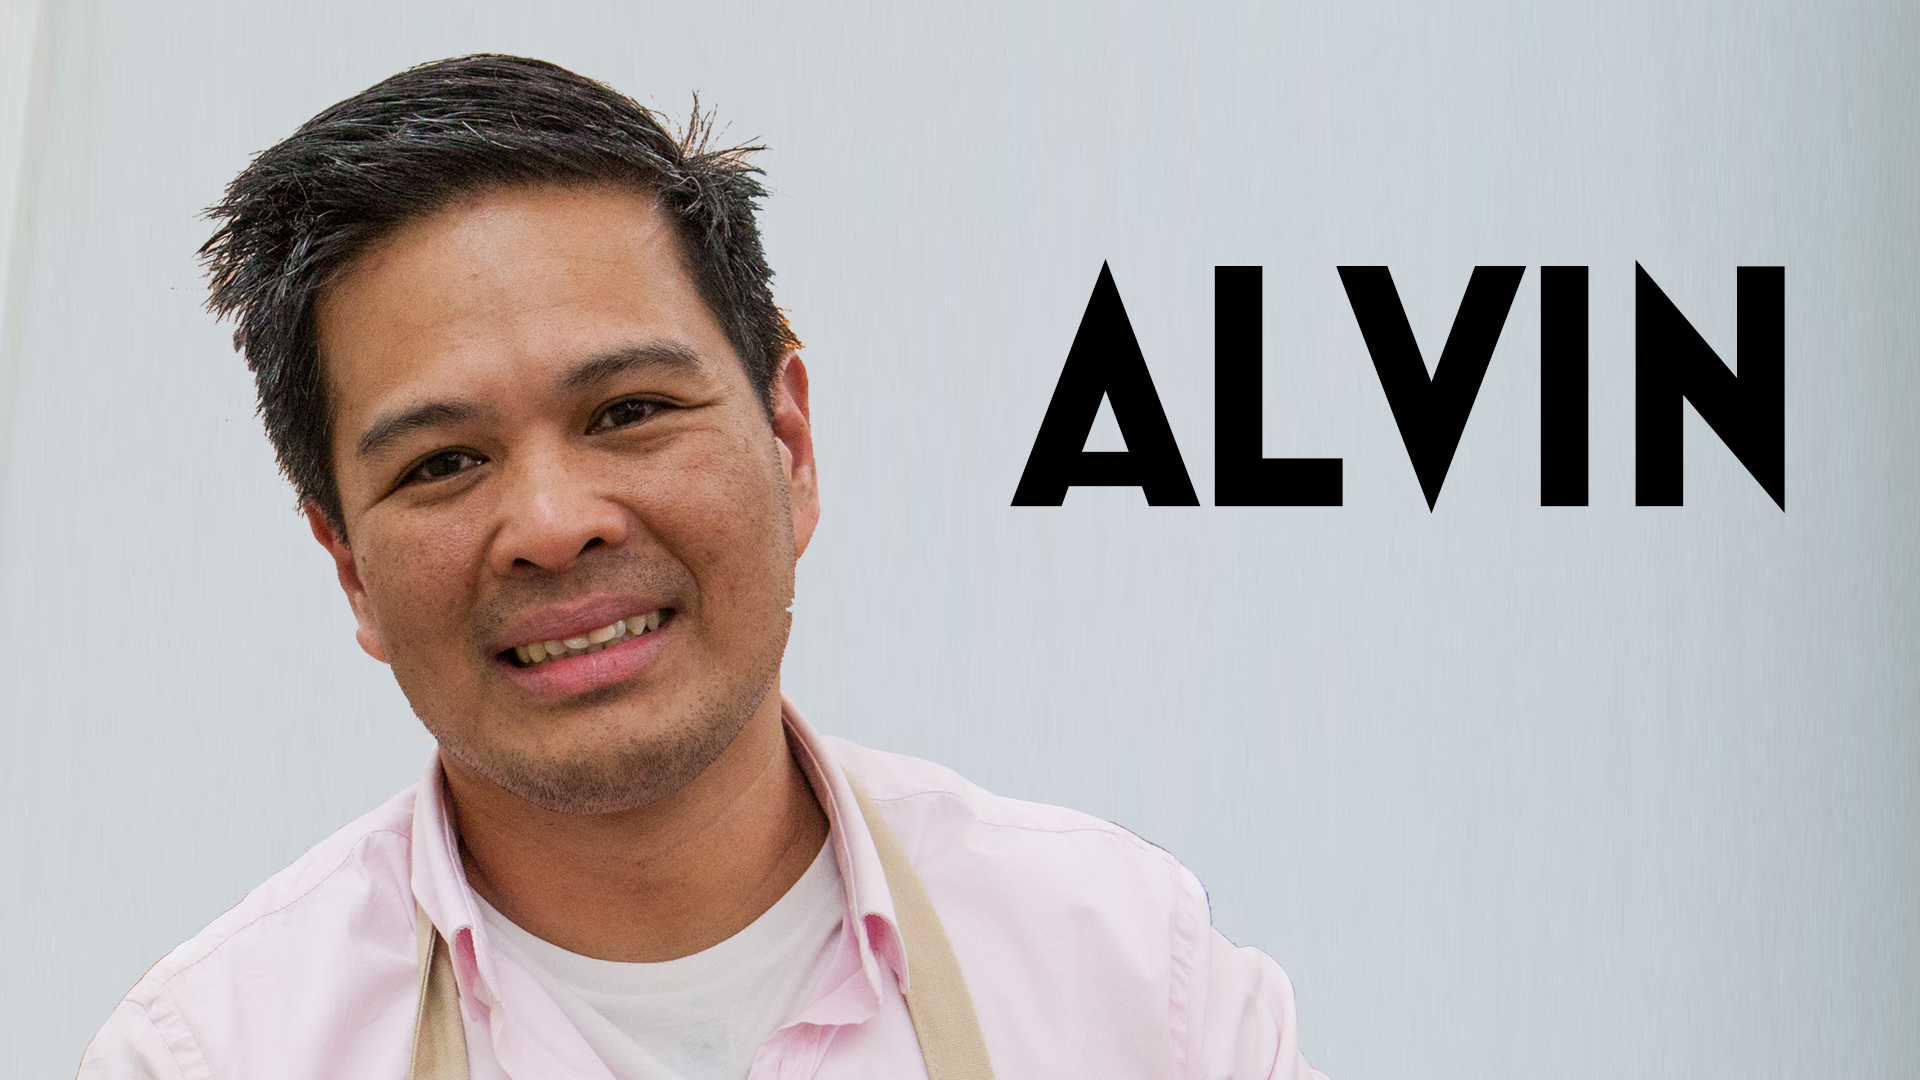 The Great British Baking Show - Alvin